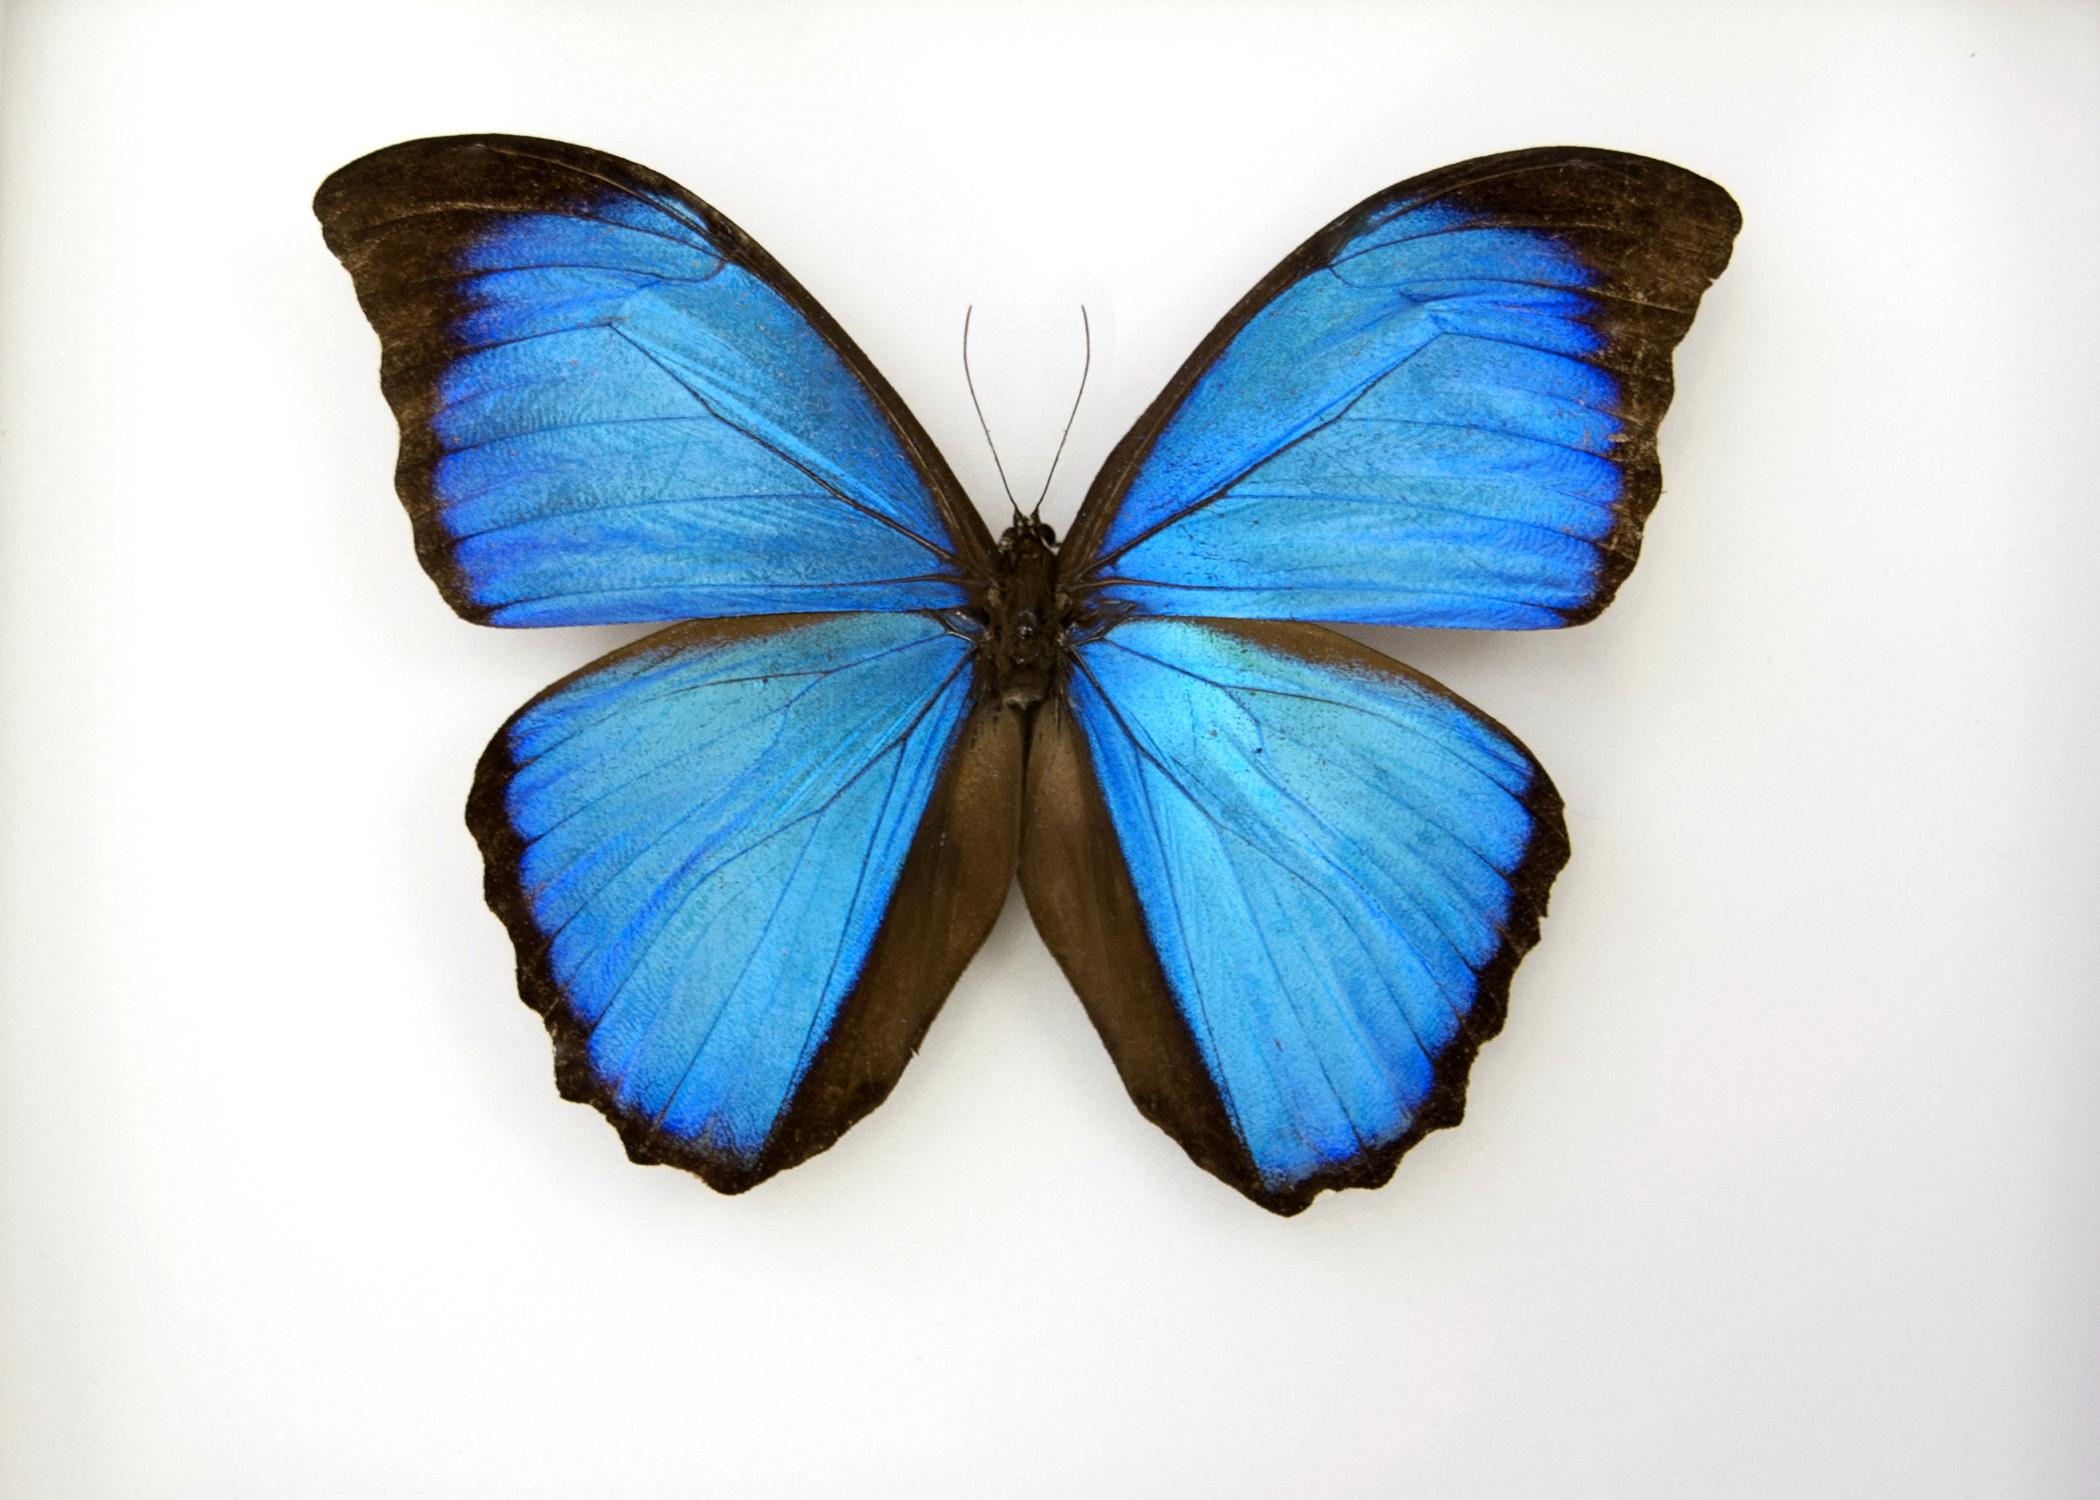 This blue Morpho butterfly has a wingspan of about 4 inches and was one of about 1,300 butterfly specimens donated to Mississippi State University by Ruth Williams, widow of lifelong collector Jim Williams. (Photo by MSU Ag Communications/Kat Lawrence)